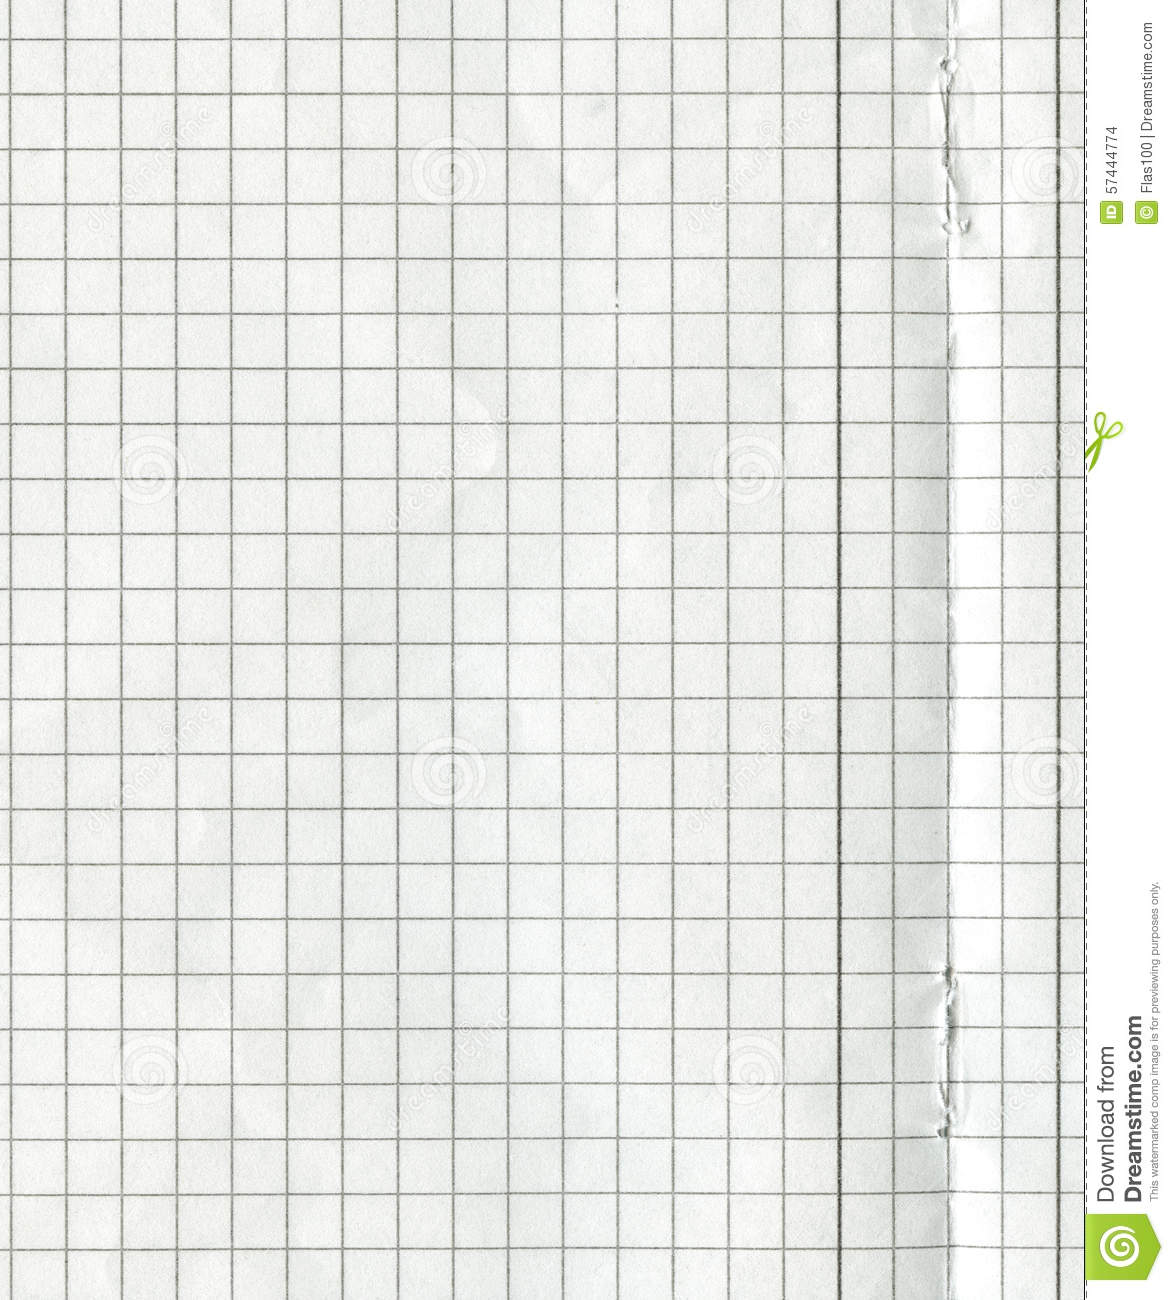 Blank Math Paper Stock Photo Image Of Texture Paper